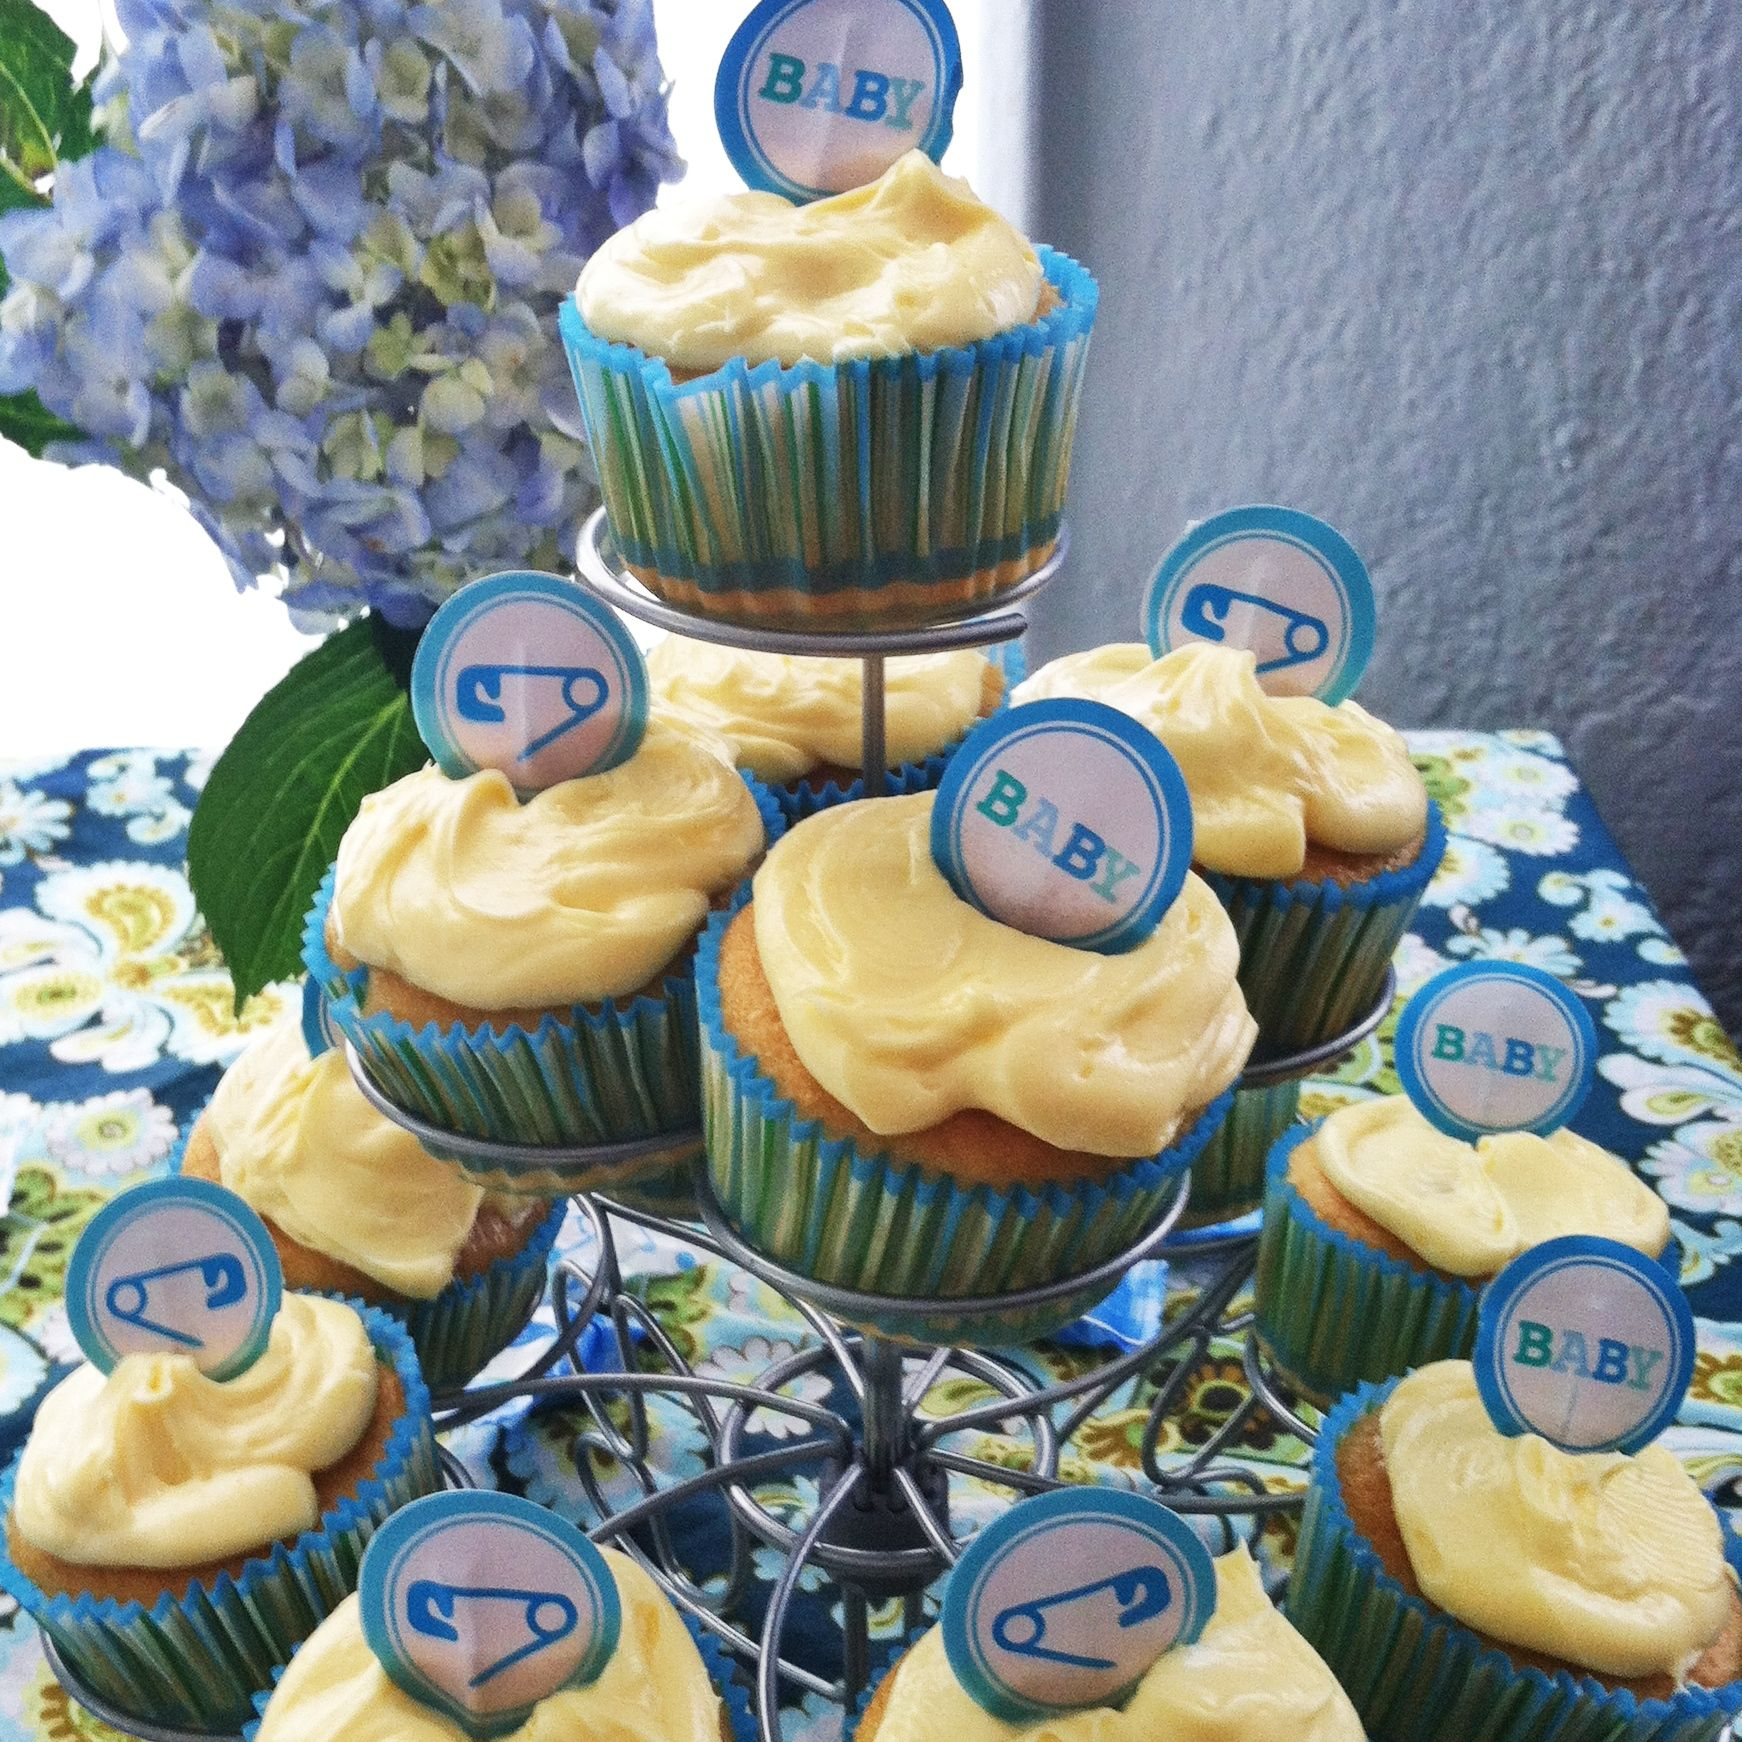 Baby shower cupcake tower, baby boy, blue, cupcakes